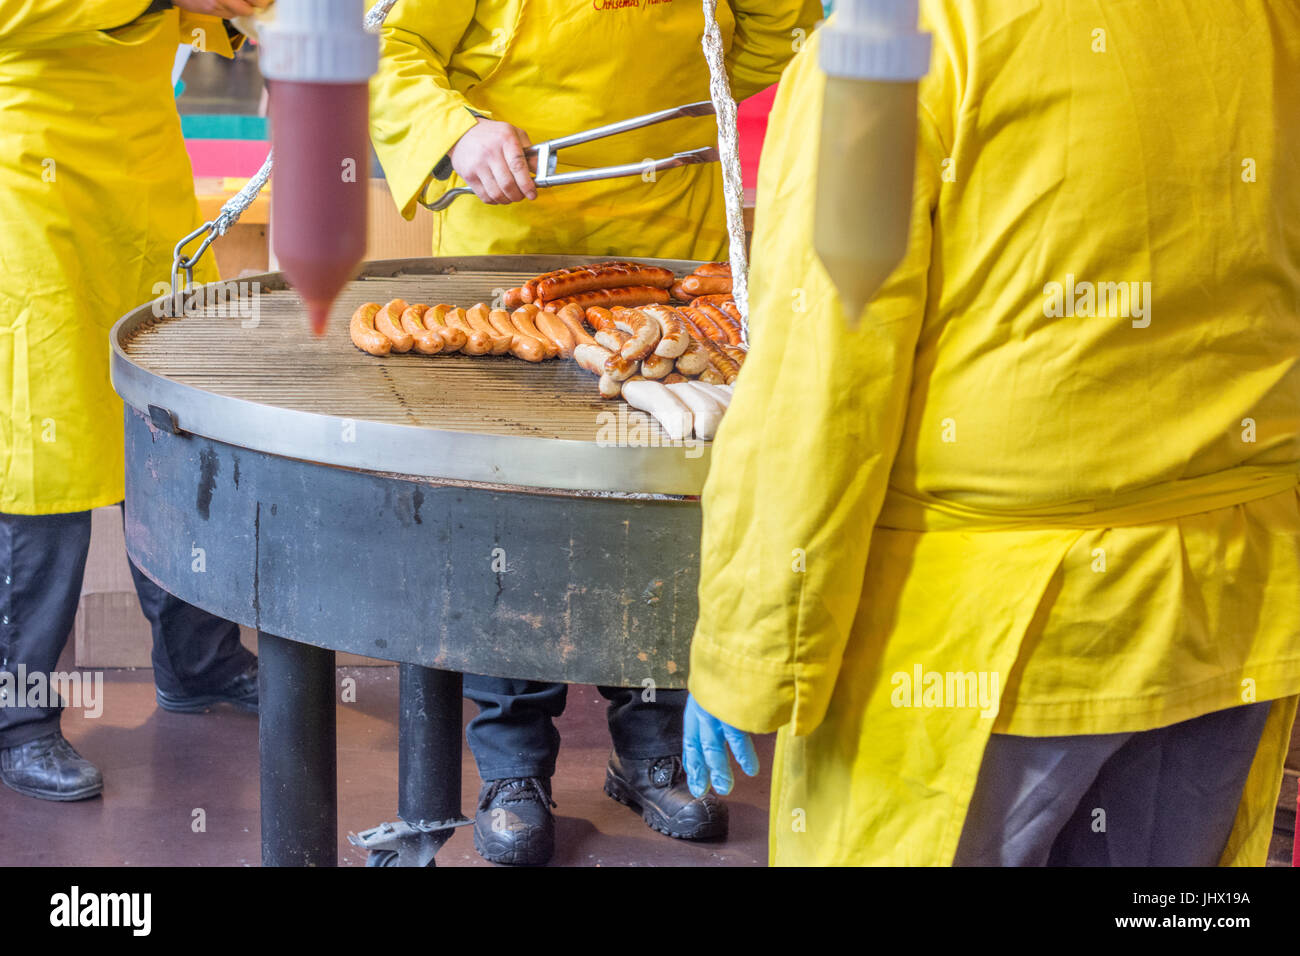 Grilling typical German Market sausages in a market stall. Stock Photo